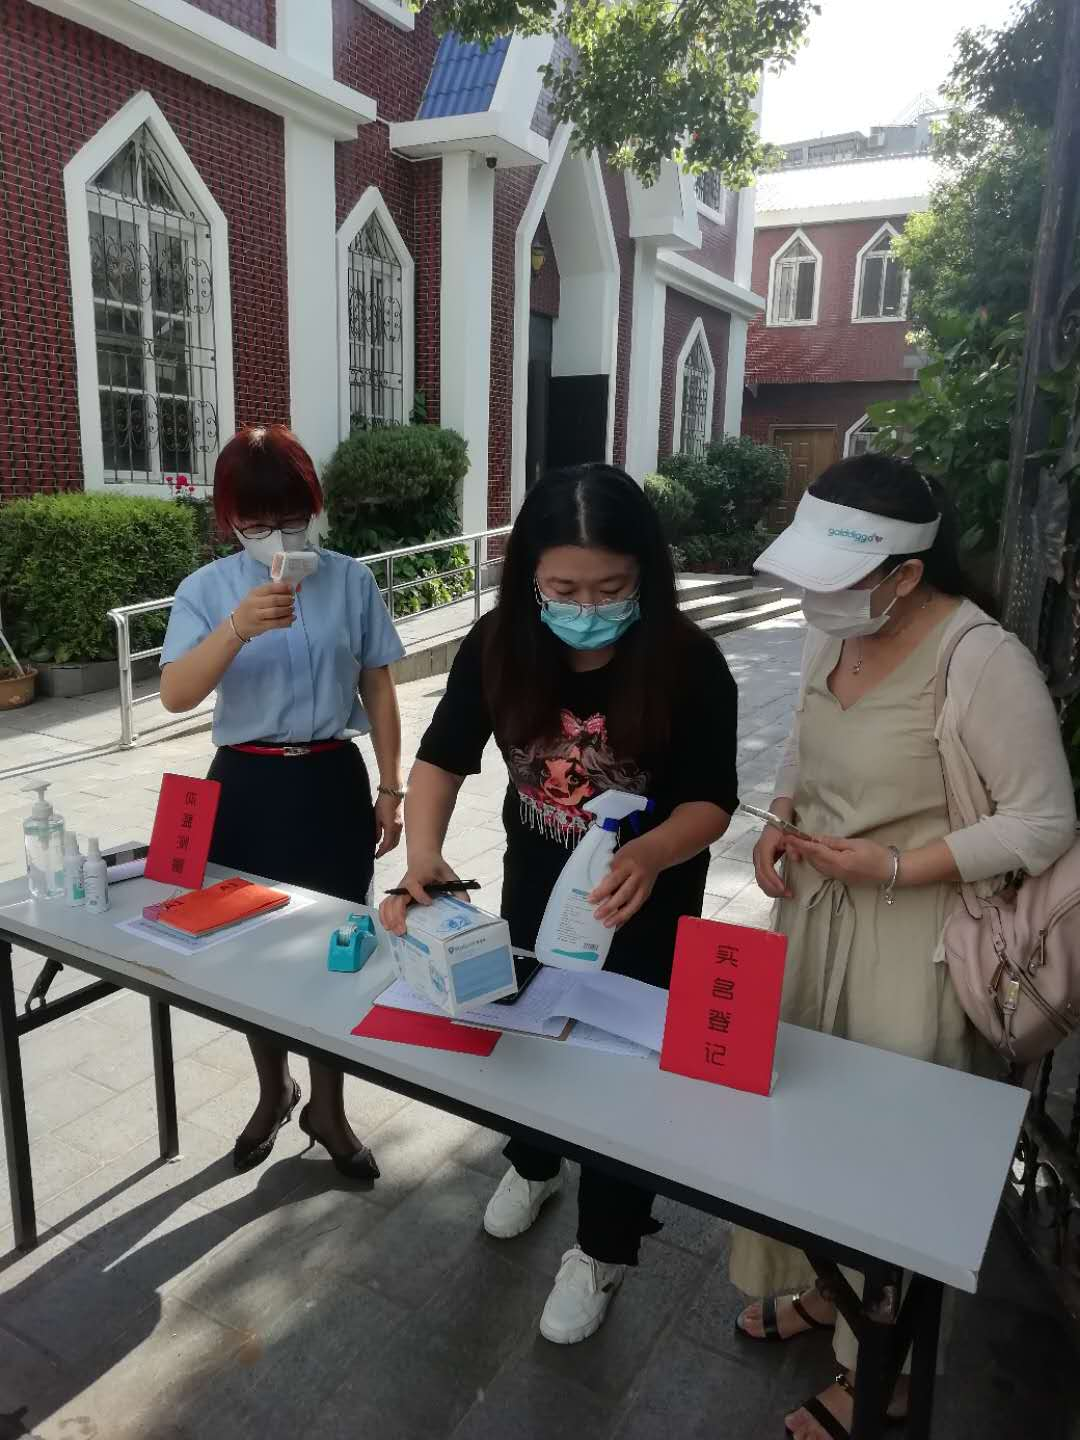 Co-workers were measuring body temperature, wearing masks, showing health codes, and doing registration work.